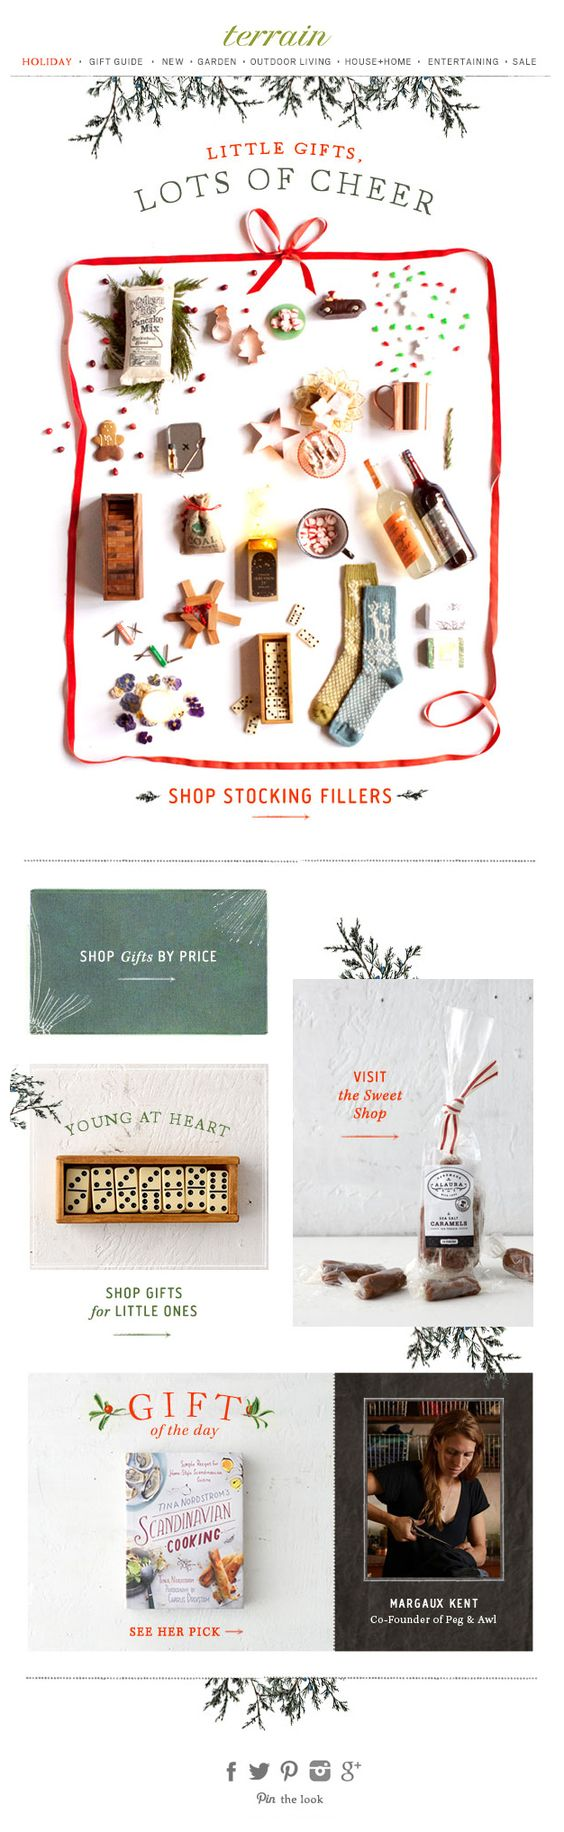 Design holiday emails 6 inspiring designs tips robly holiday emails kristyandbryce Gallery